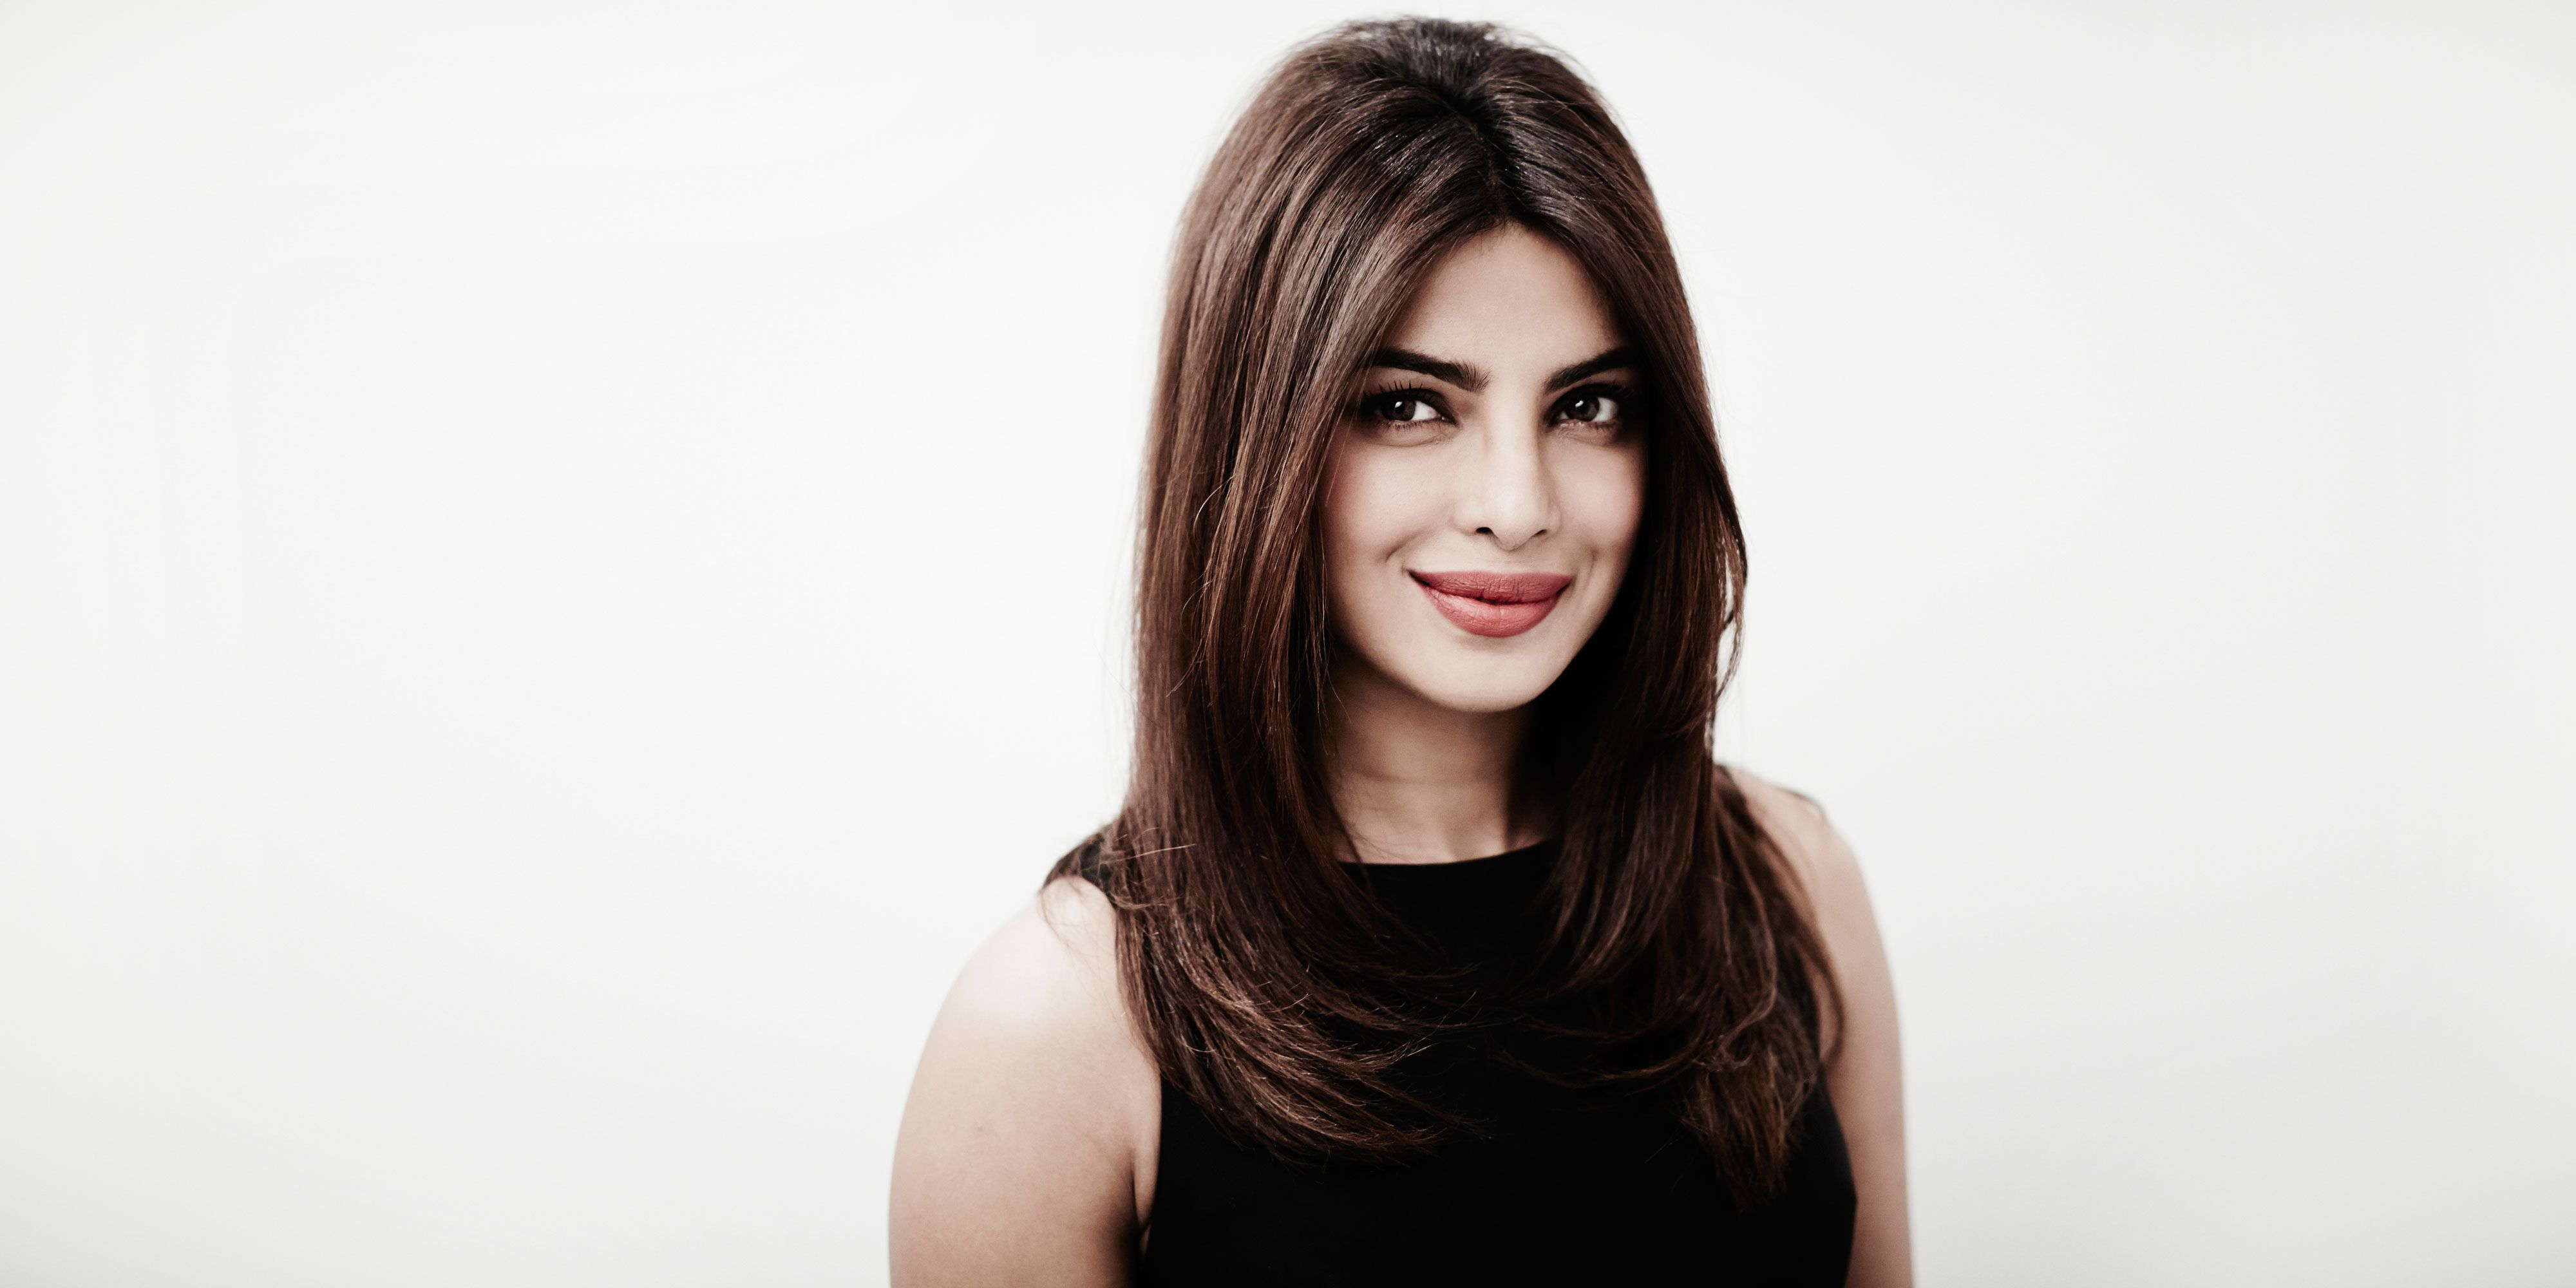 Priyanka Chopra's Diet and Exercise Routine Is All AboutBalance photo